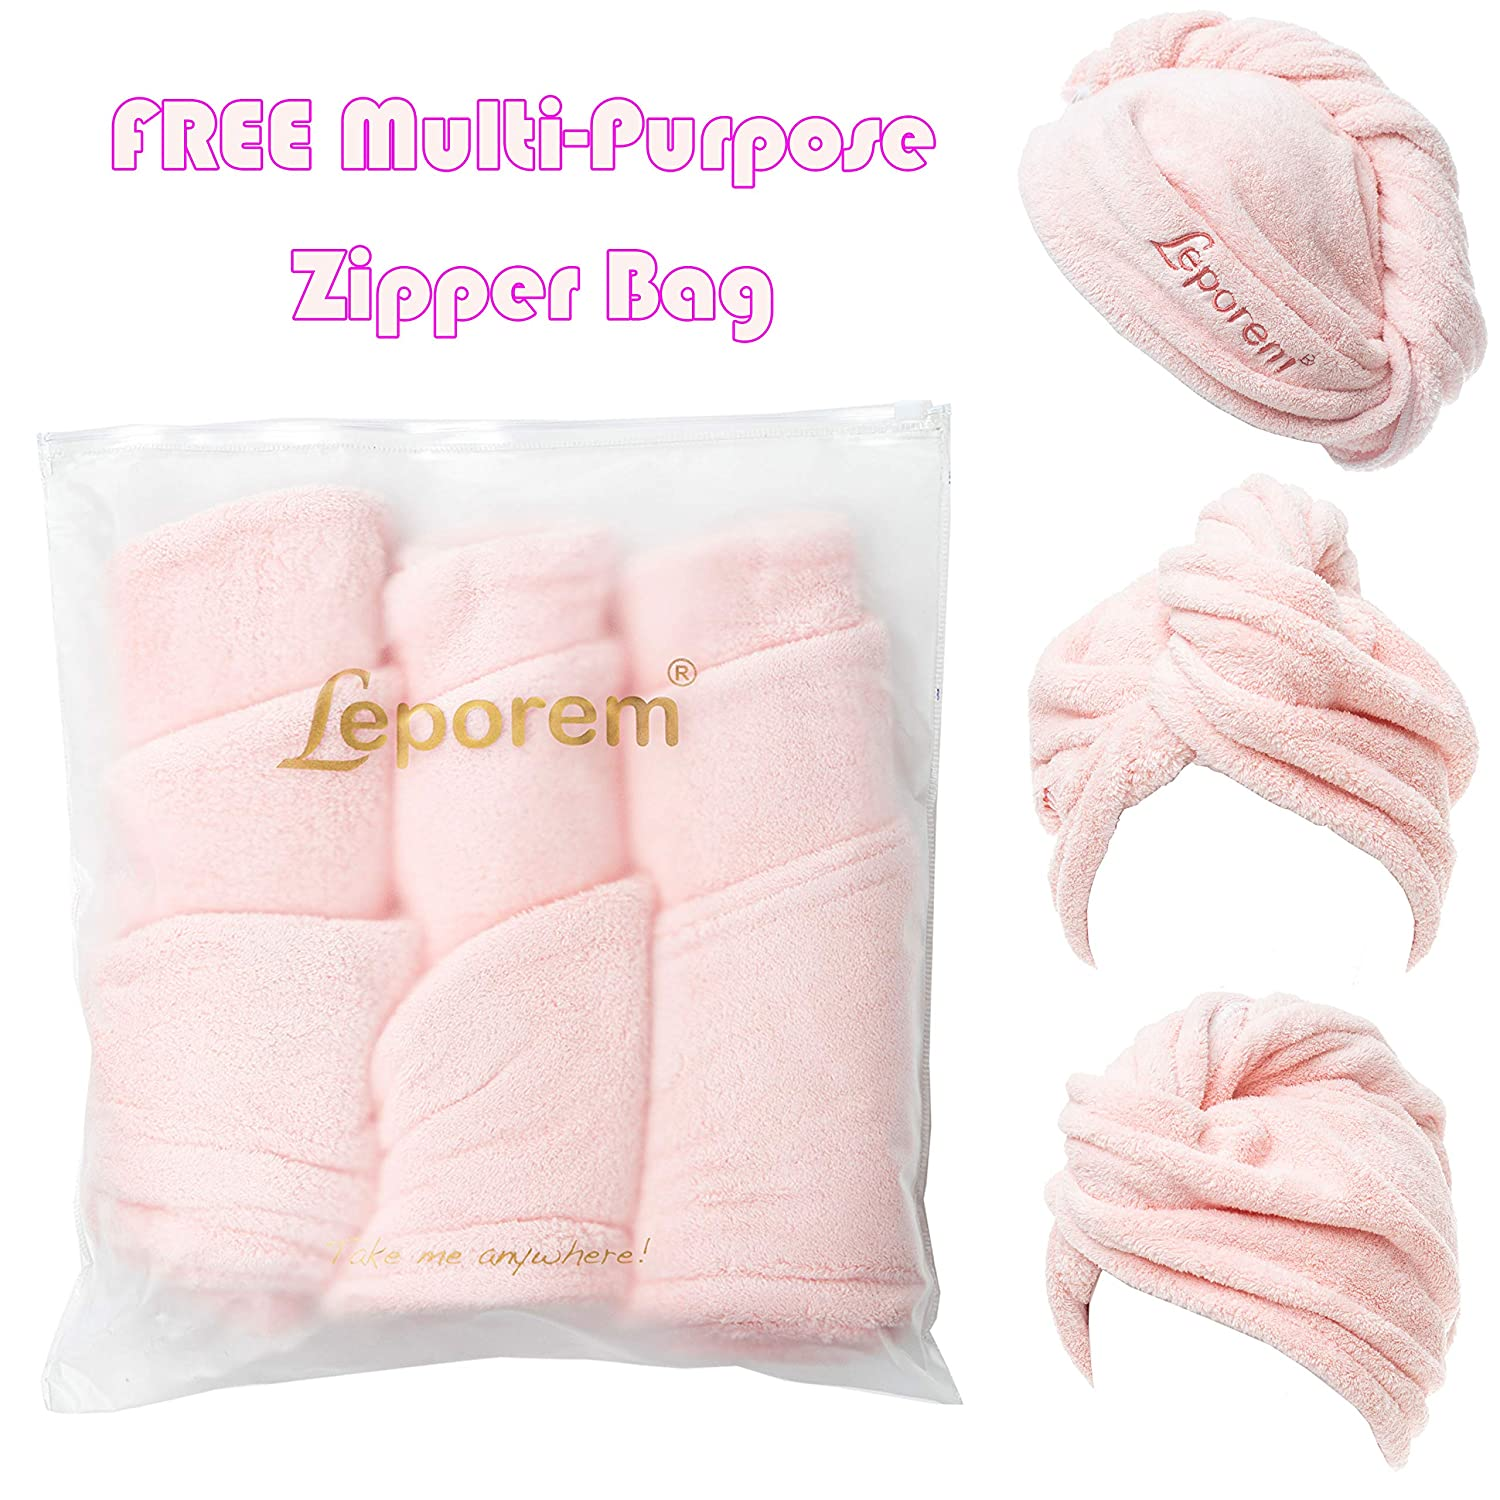 "3 Pack Hair Towel - LARGE 10"" X 26"" Premium Microfiber Hair Towel Wrap, Super Absorbent & Quick Drying Hair Towel Turban for Dry, Curly, Long & Thick Hair, Large Beautiful Hair Wrap Towel (Pale Pink): Home & Kitchen"